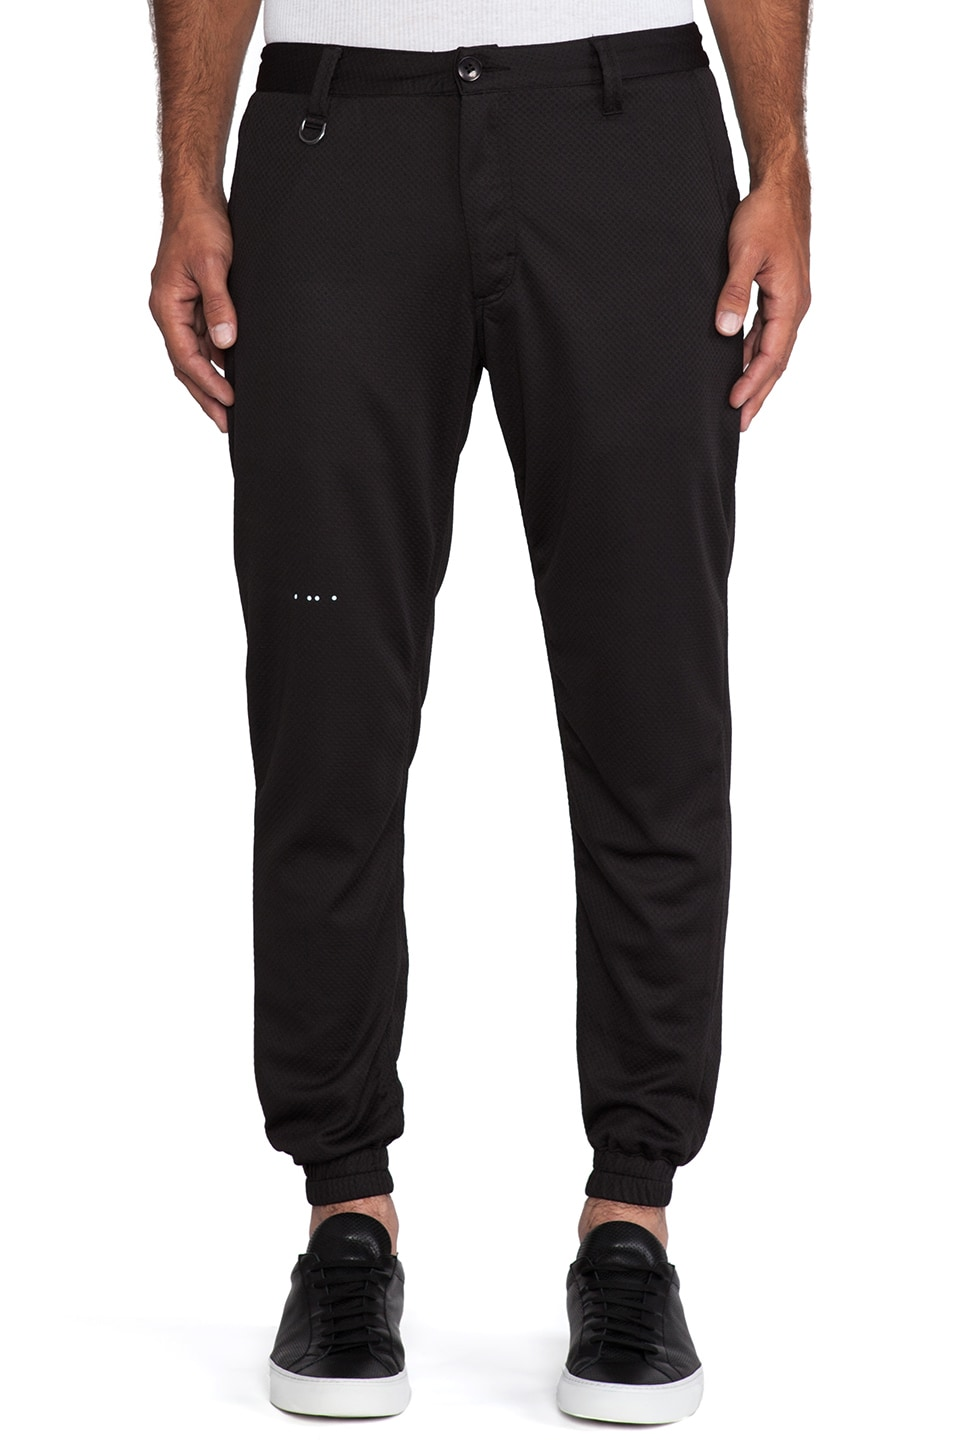 Publish MONO Franko Pant in Black